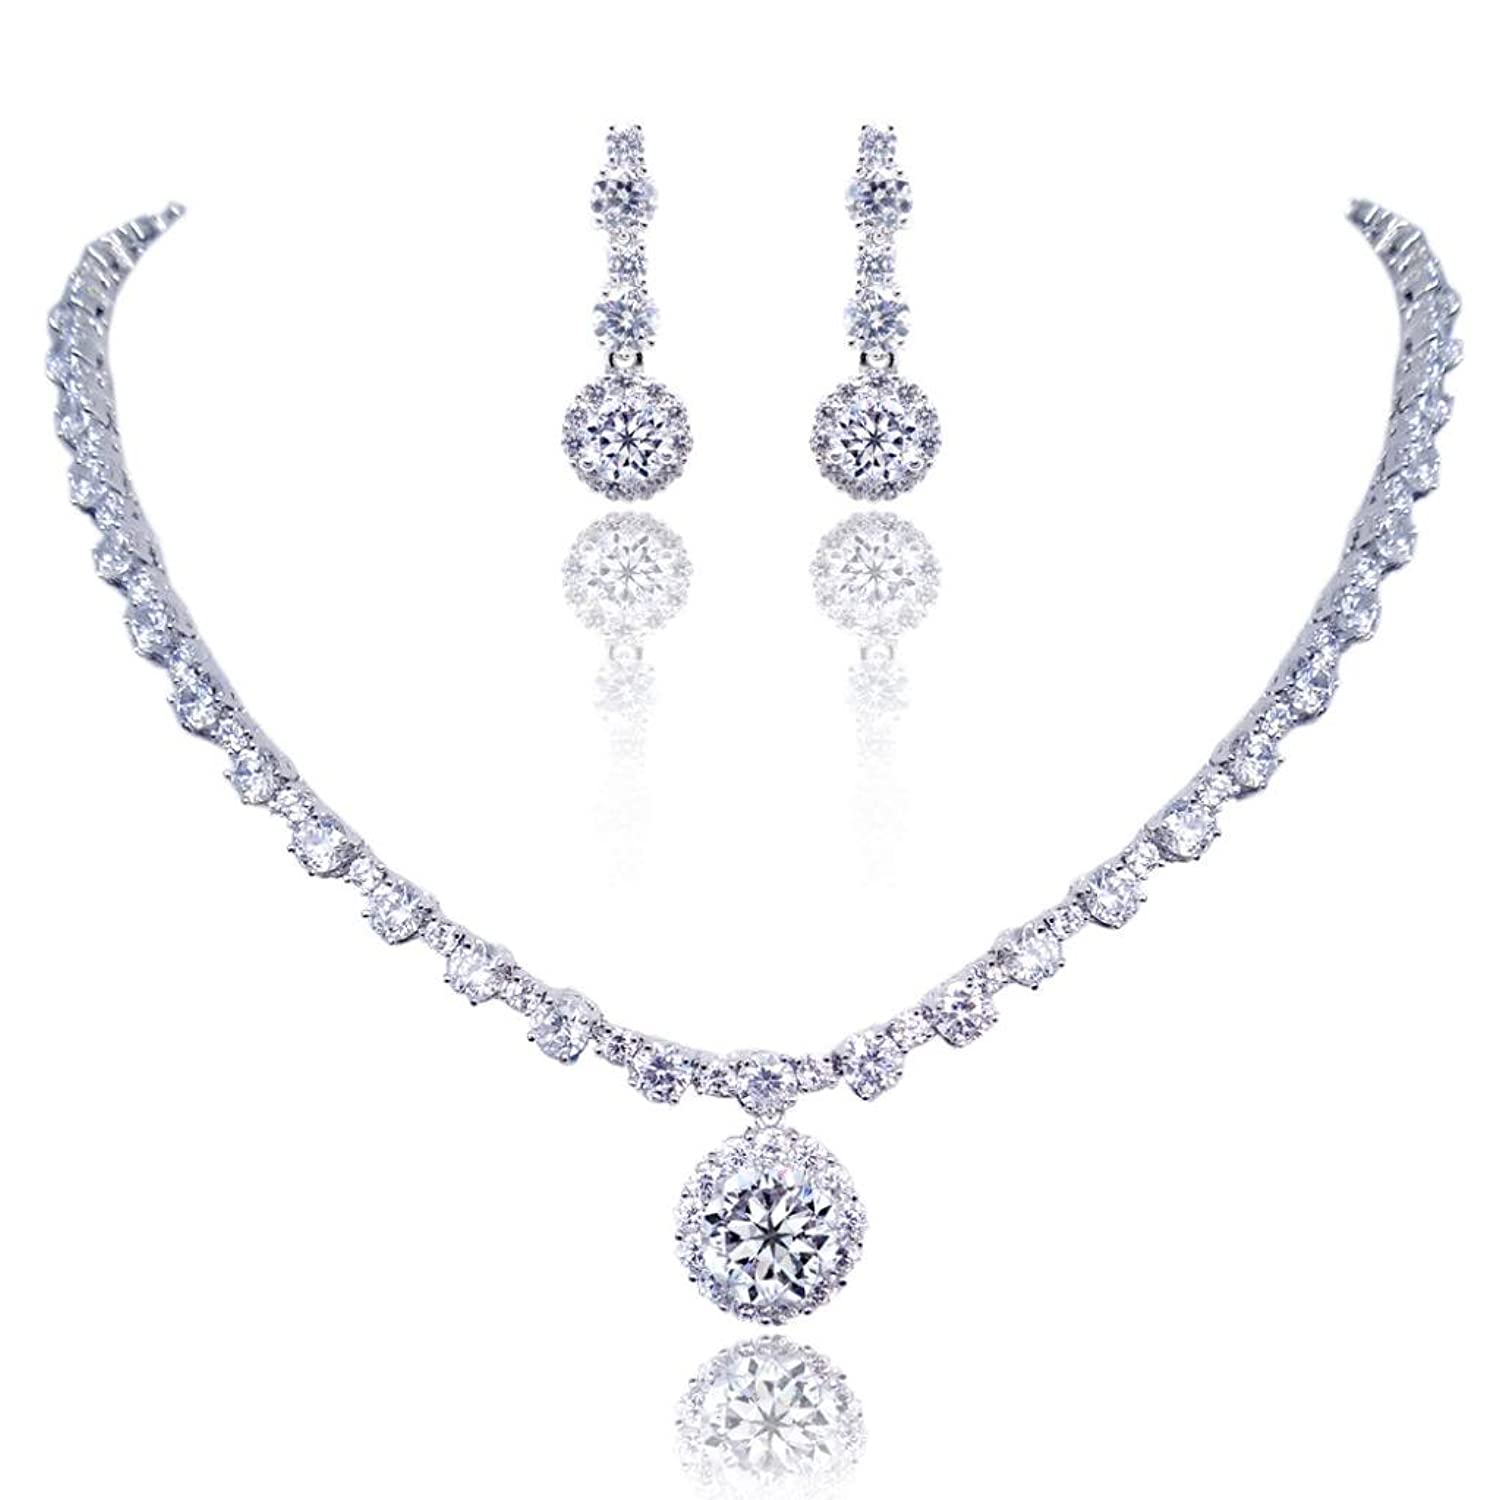 EVER FAITH® Mother's Gift Wedding Prong Clear CZ Round Necklace Earrings Set Silver-Tone